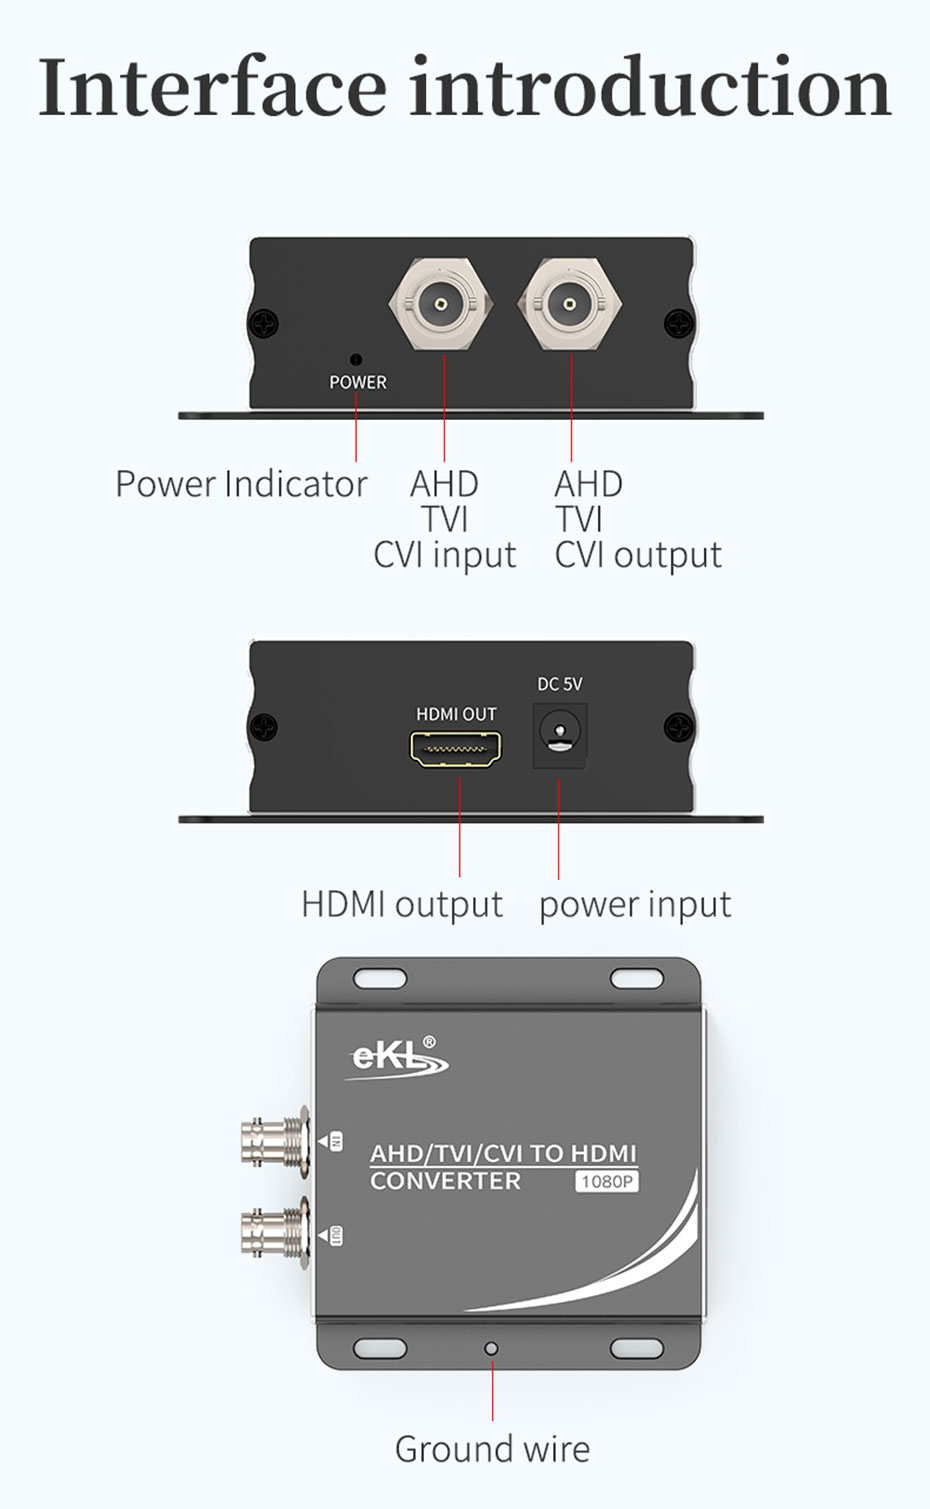 AHD/TVI/CVI to HDMI converter AHD supports signal amplification